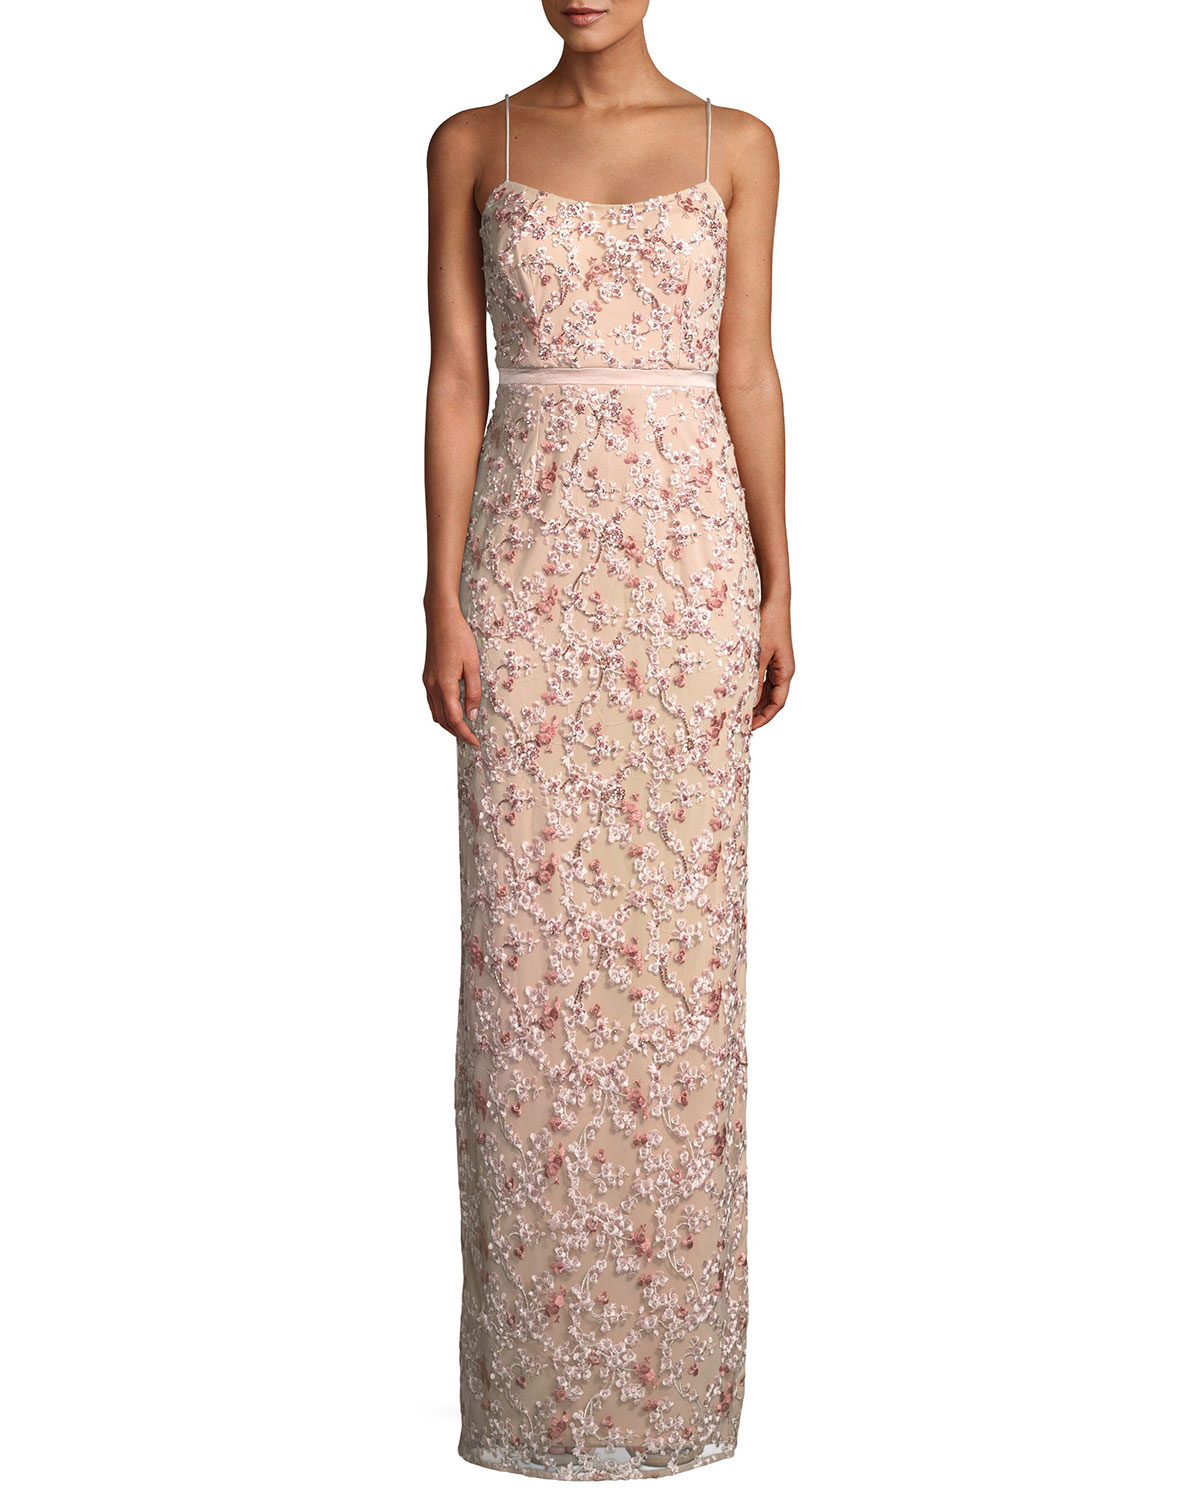 Aidan Mattox Floral Embroidered Gown w/ Beading | Neiman Marcus